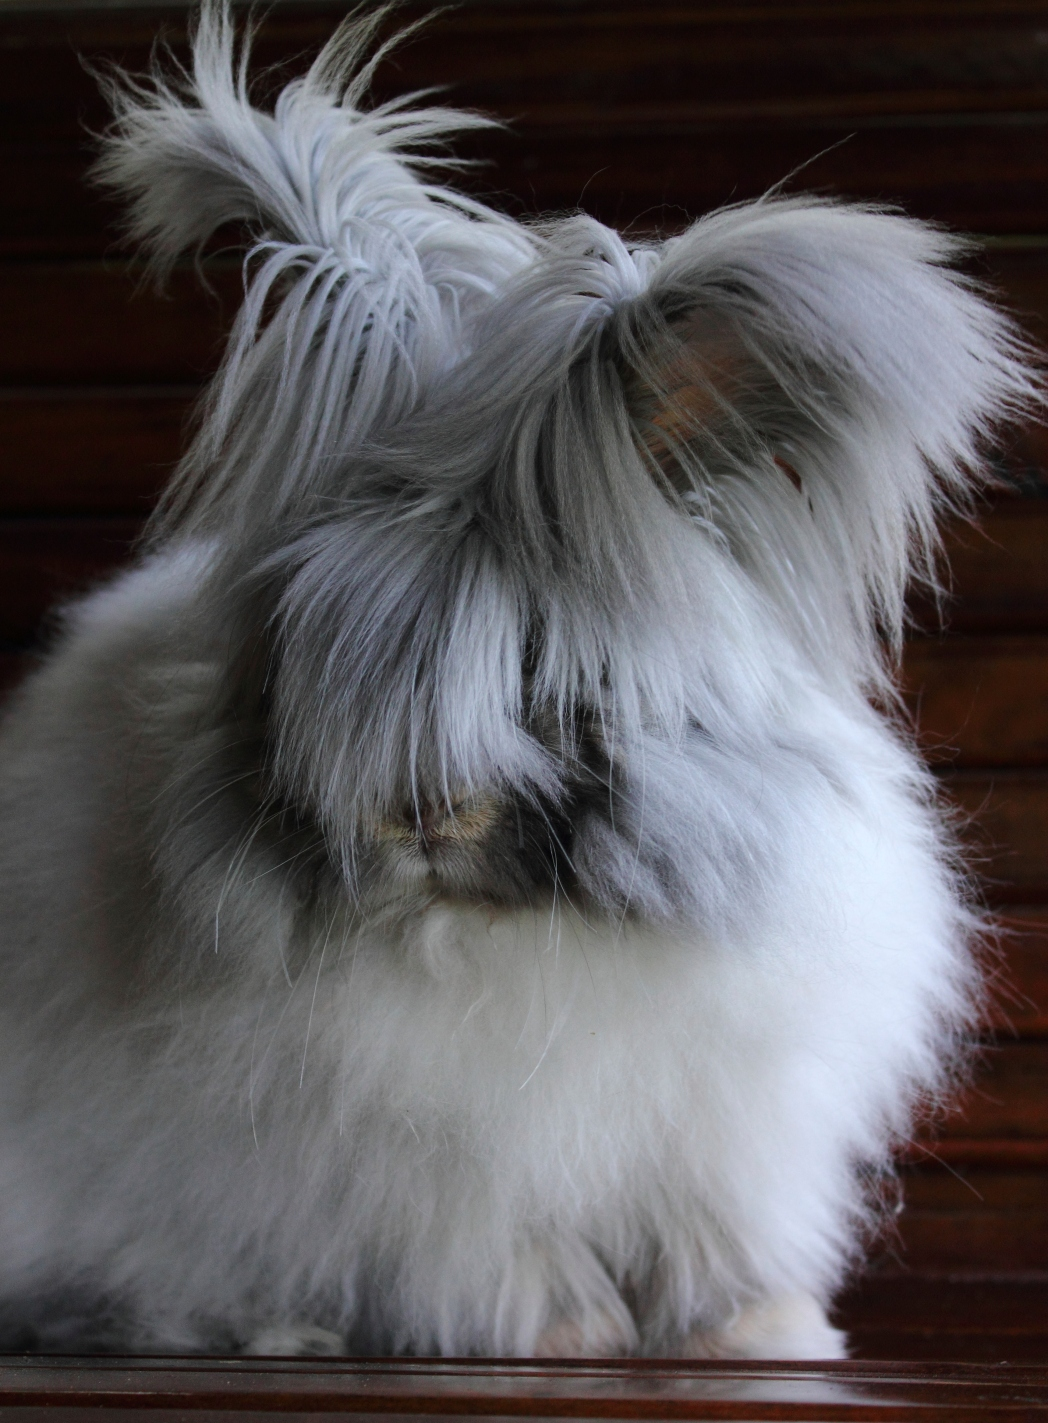 Fluffiest of fluffs, the Angora rabbit